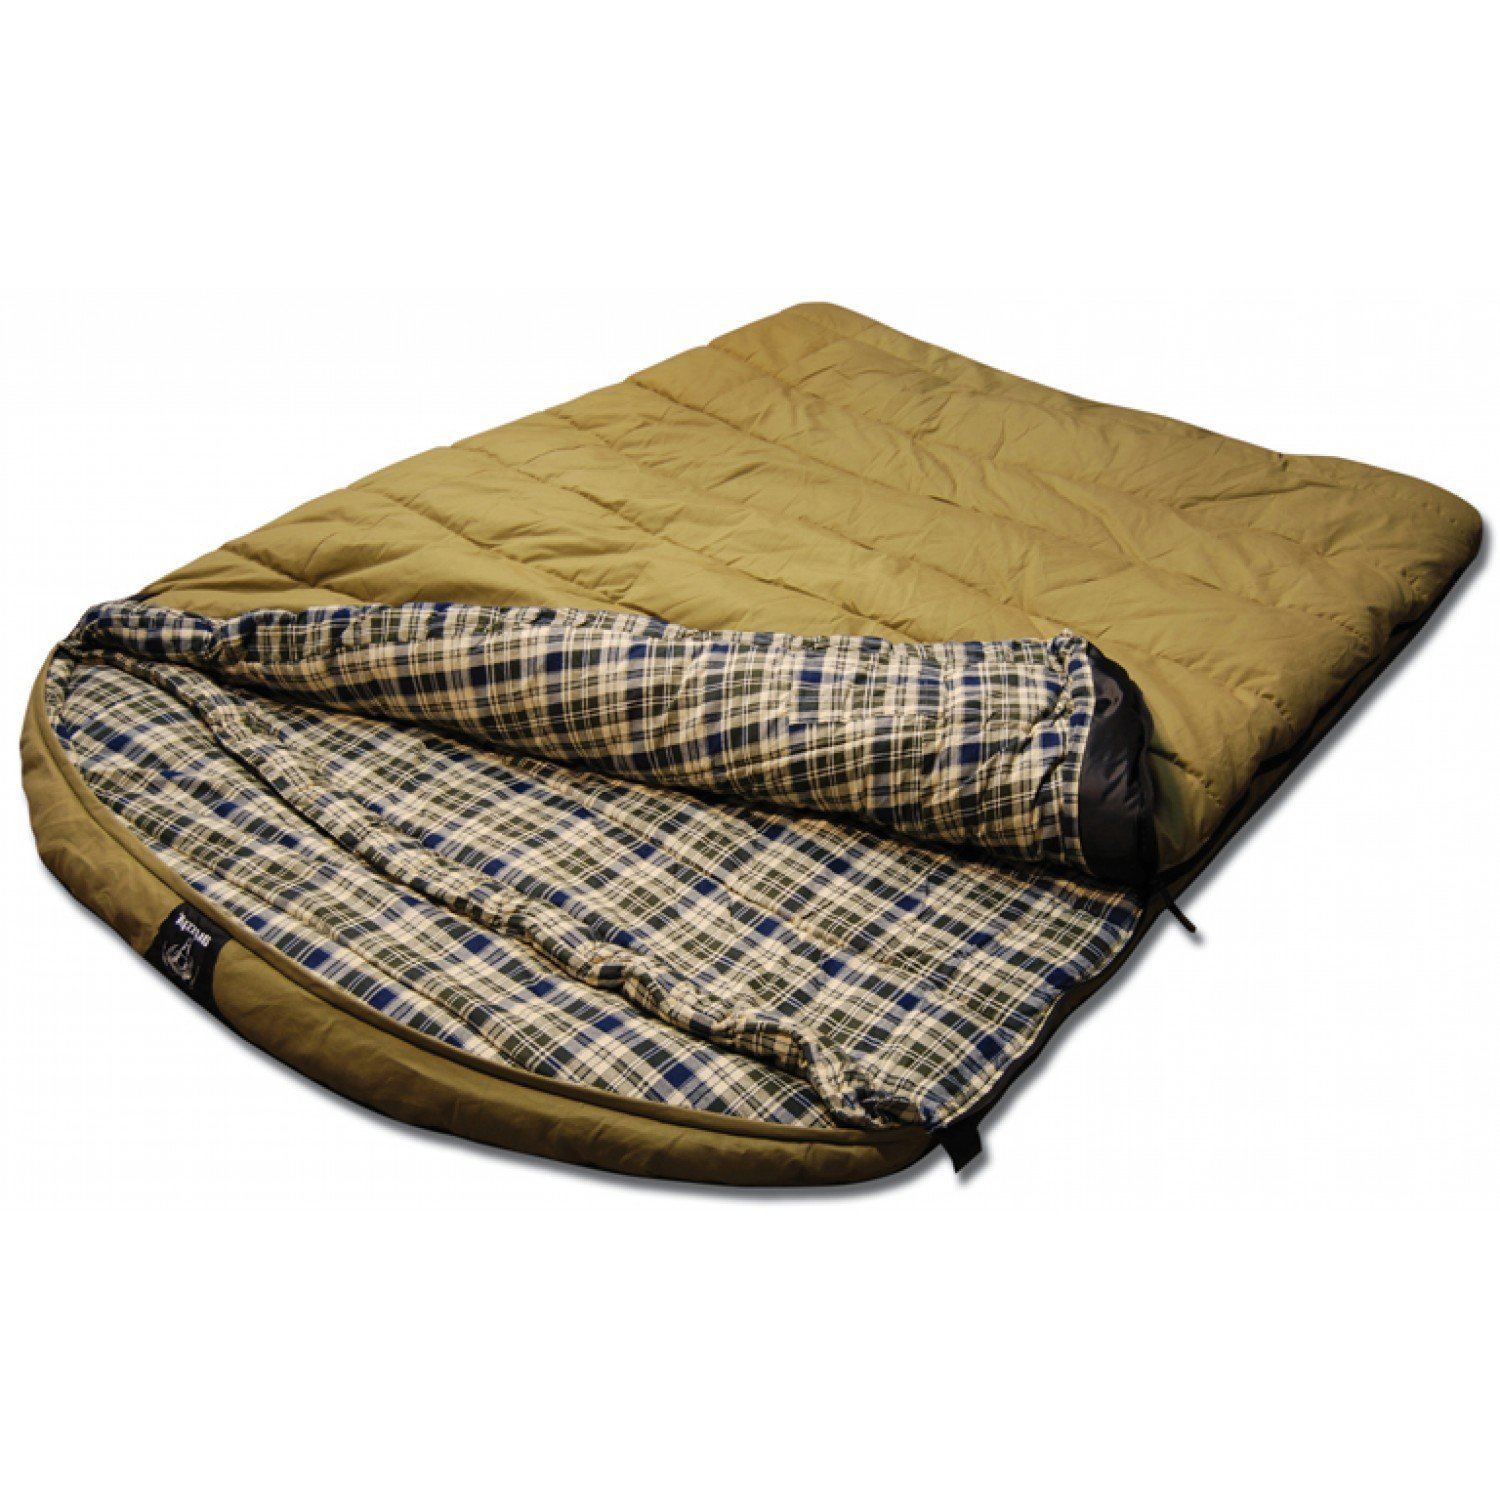 Venetian Worldwide Grizzly Private Label 2 person 0 Degree Canvas Sleeping Bag, Olive by Venetian Worldwide B01FMCL07M